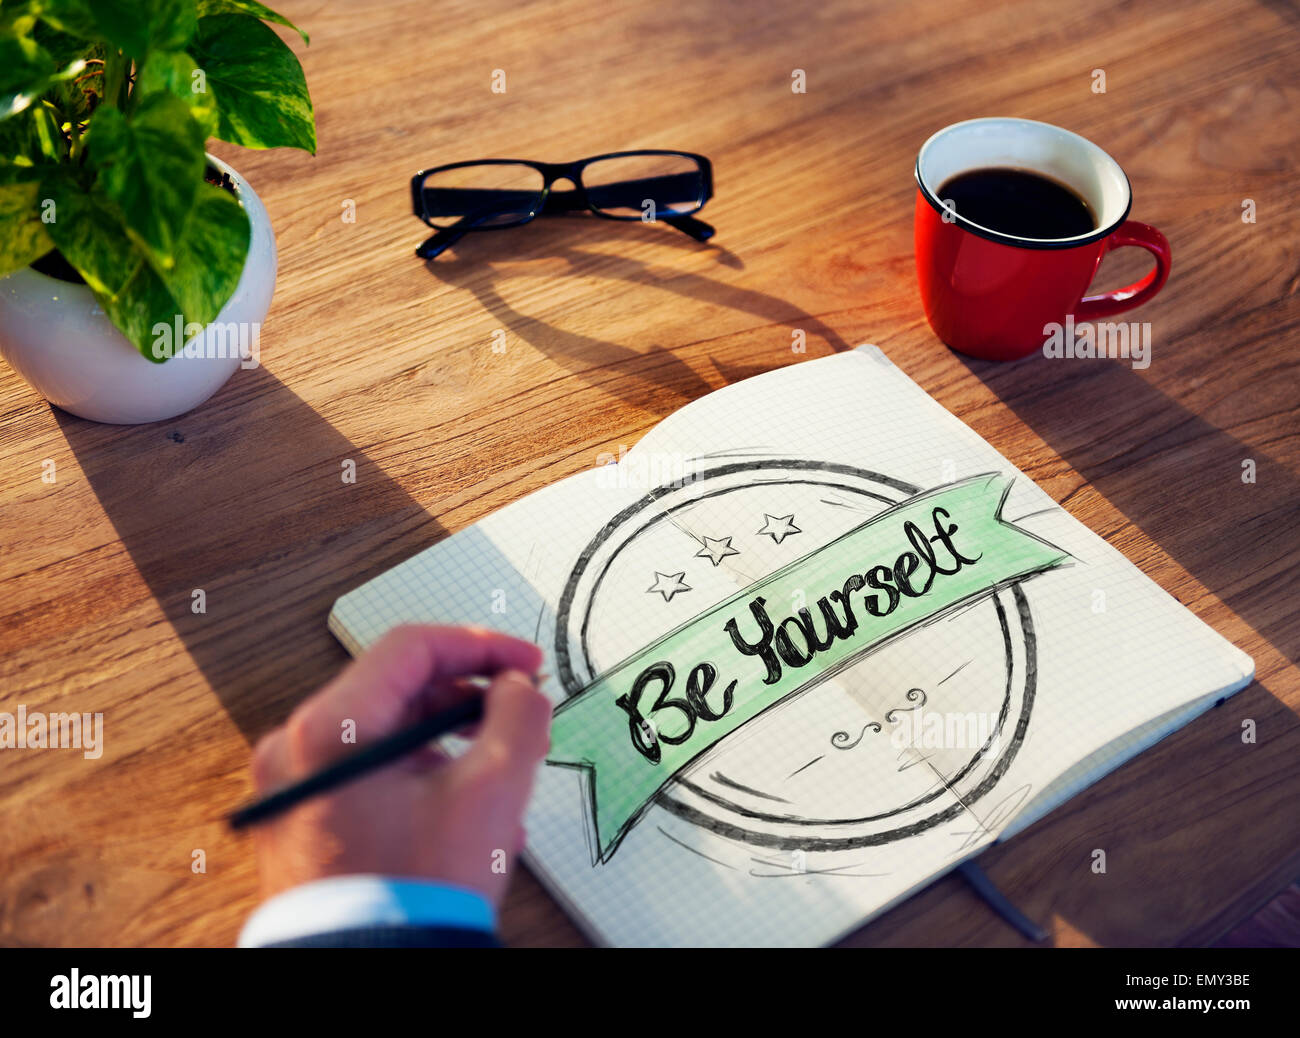 Businessman Writing the Words 'Be Yourself' - Stock Image